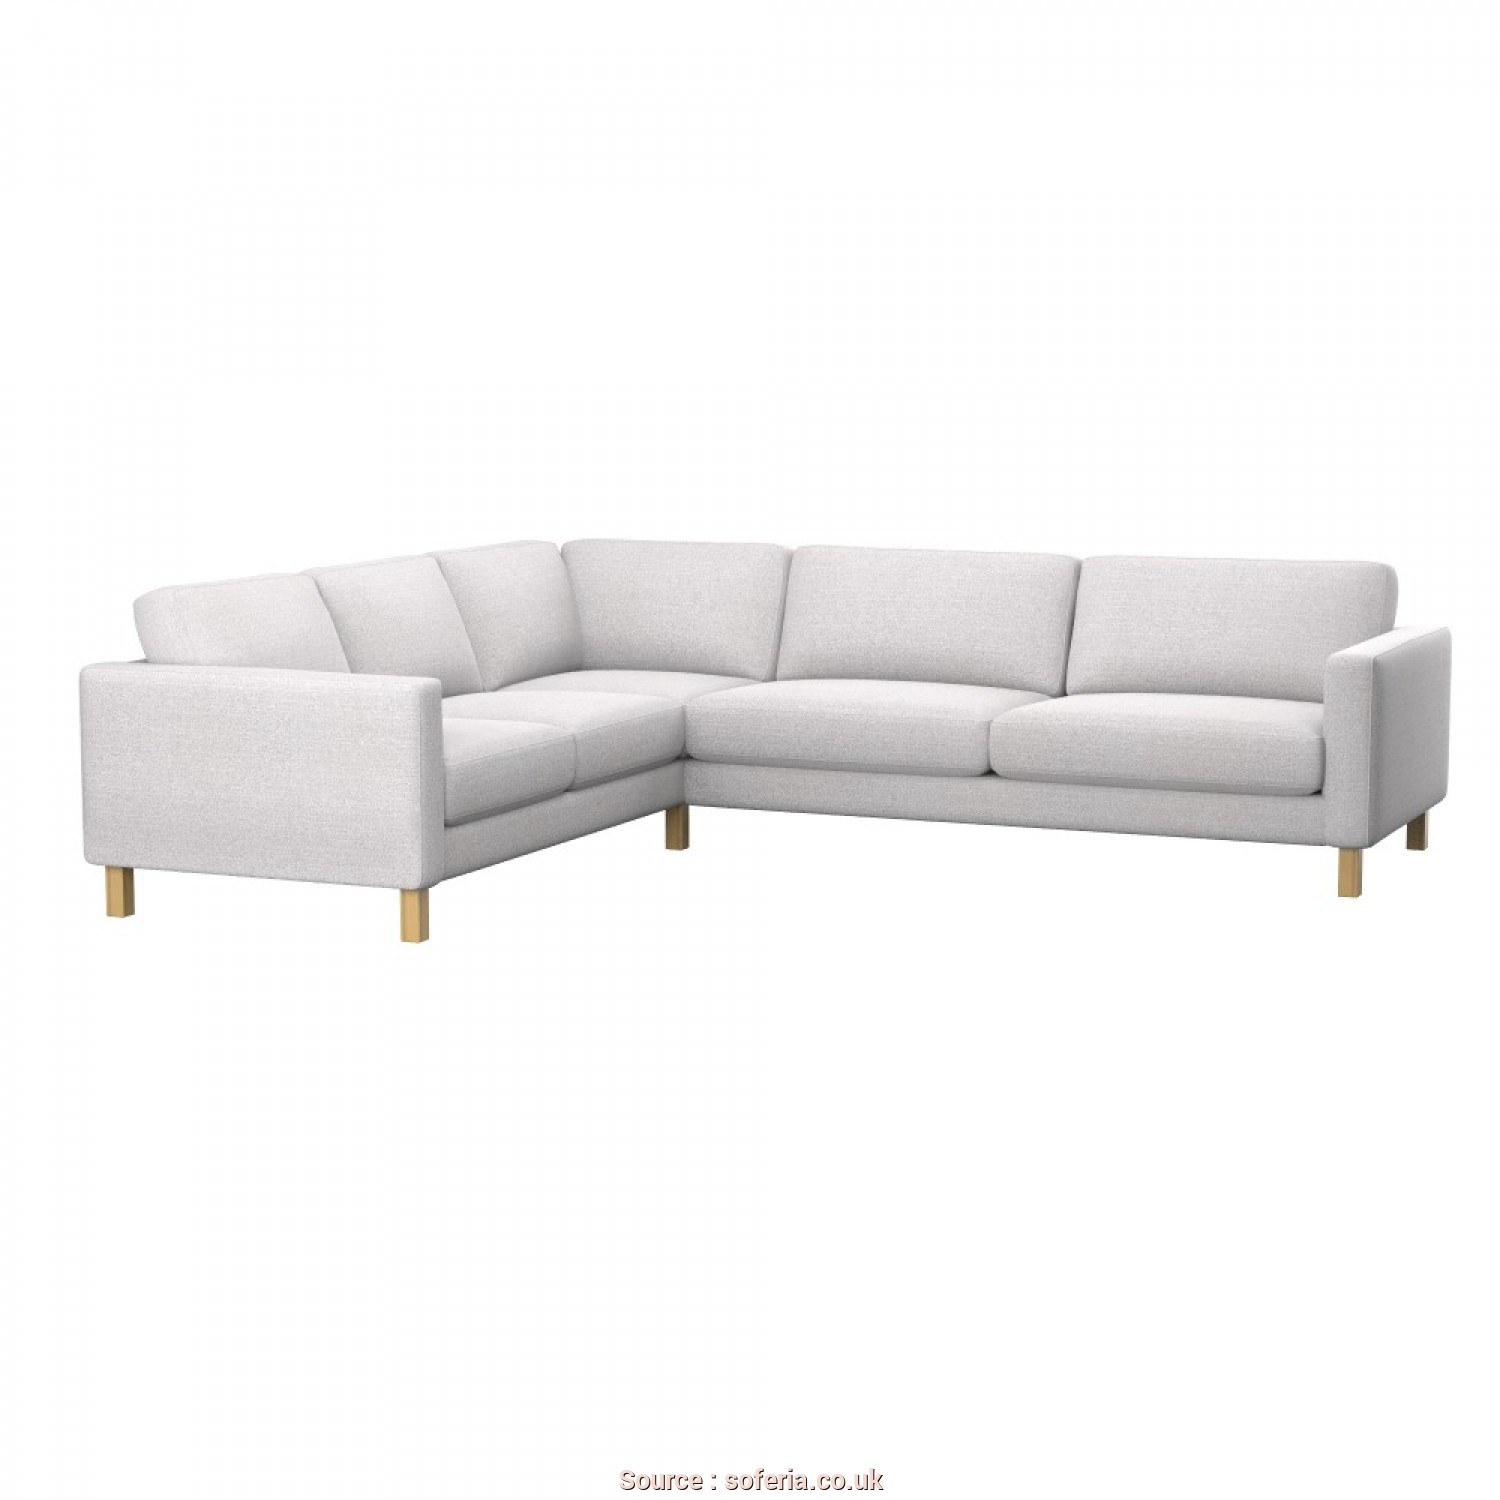 Ikea Backabro, Bettsofa, A Buon Mercato Shop, Soferia, Covers, IKEA Sofas & Armchairs